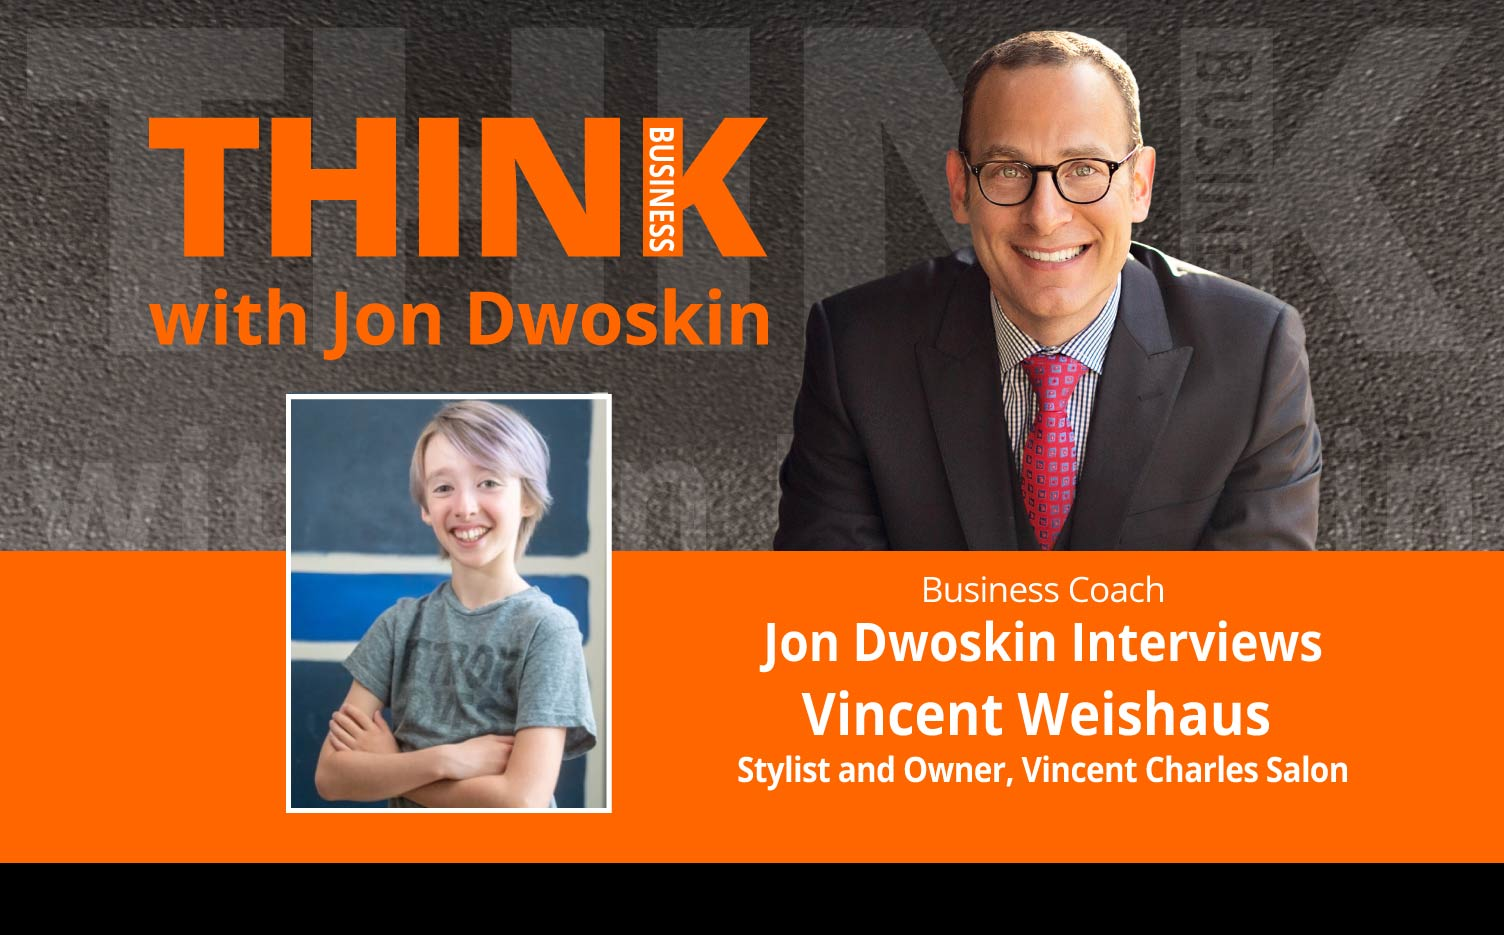 THINK Business Podcast: Jon Dwoskin Interviews Vincent Weishaus, Stylist and Owner, Vincent Charles Salon